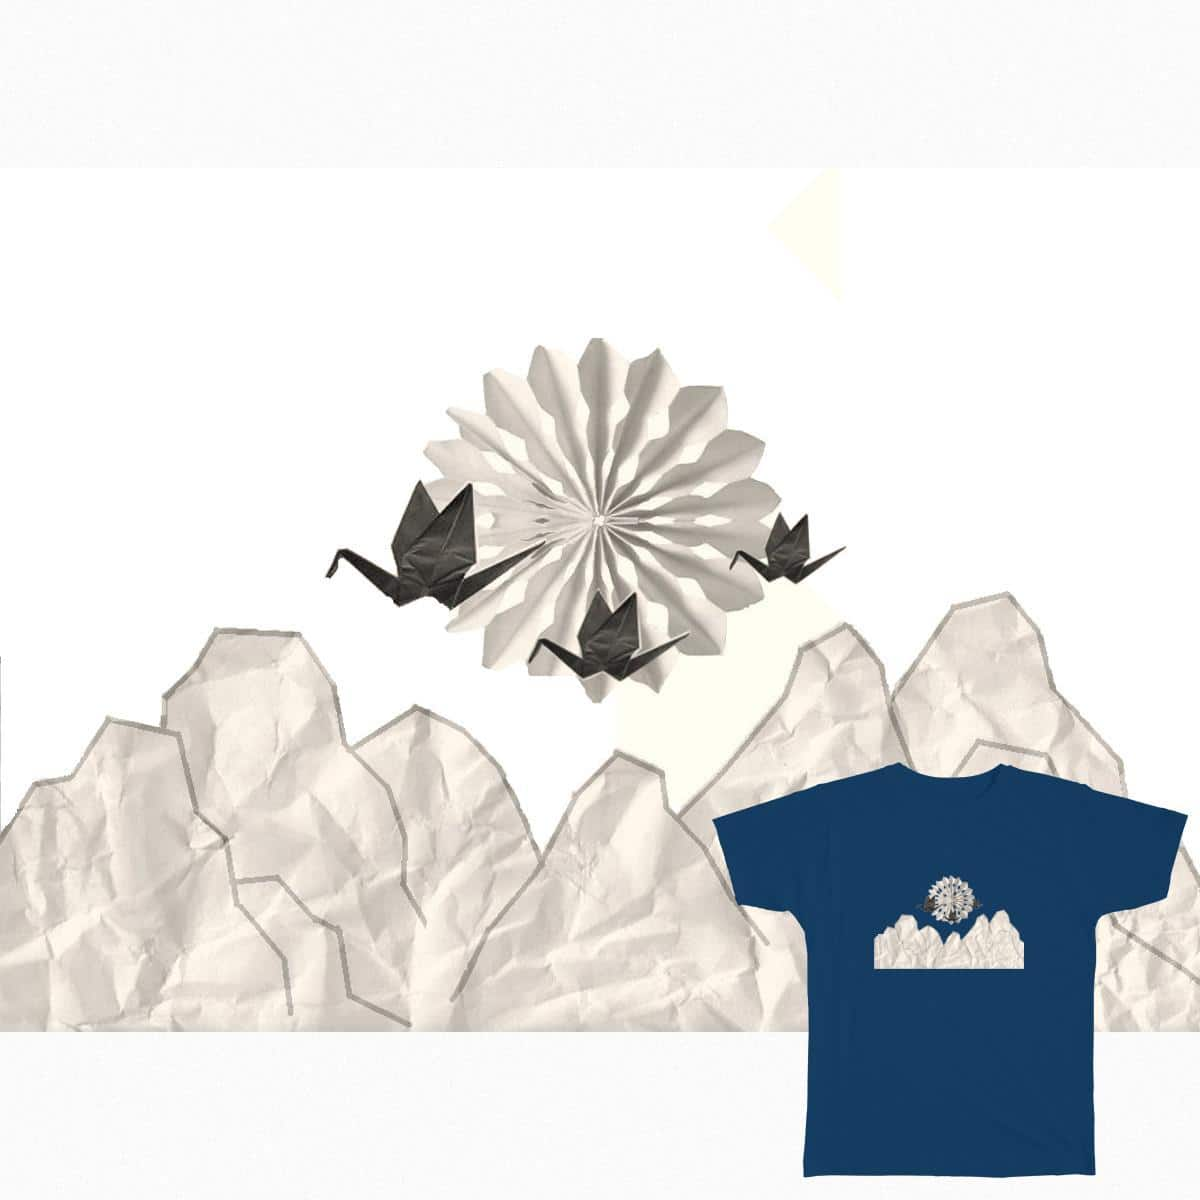 landscape by ejrb on Threadless